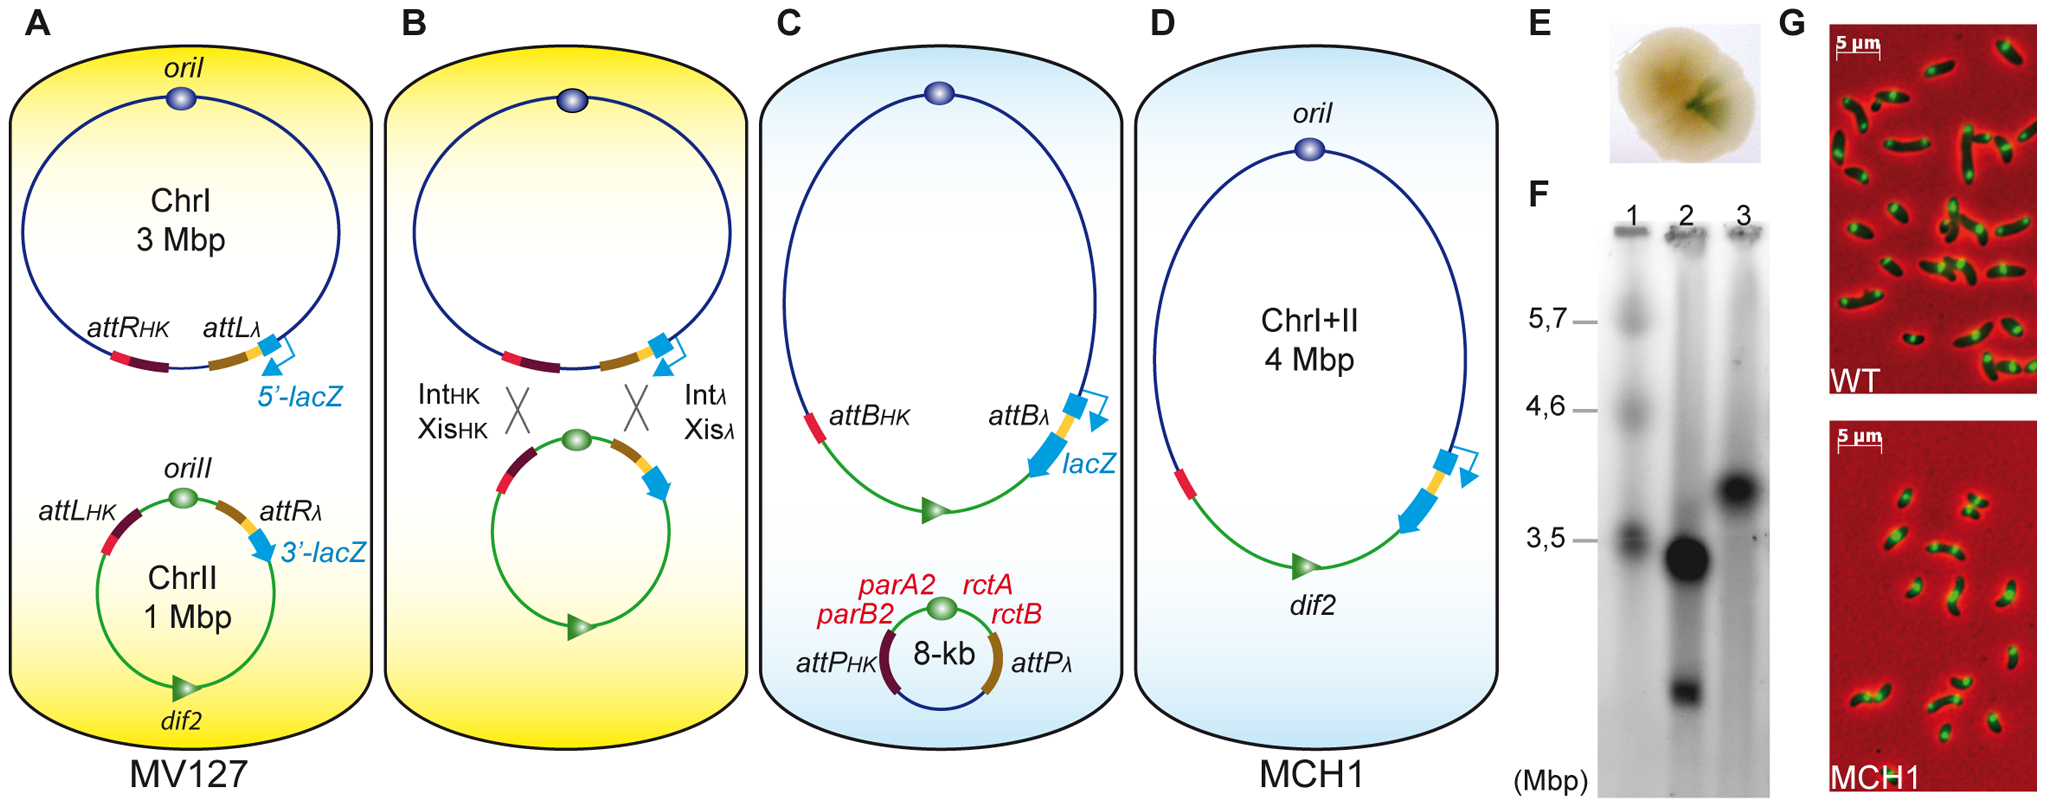 A mono-chromosomal <i>V. cholerae</i> model, MCH1.